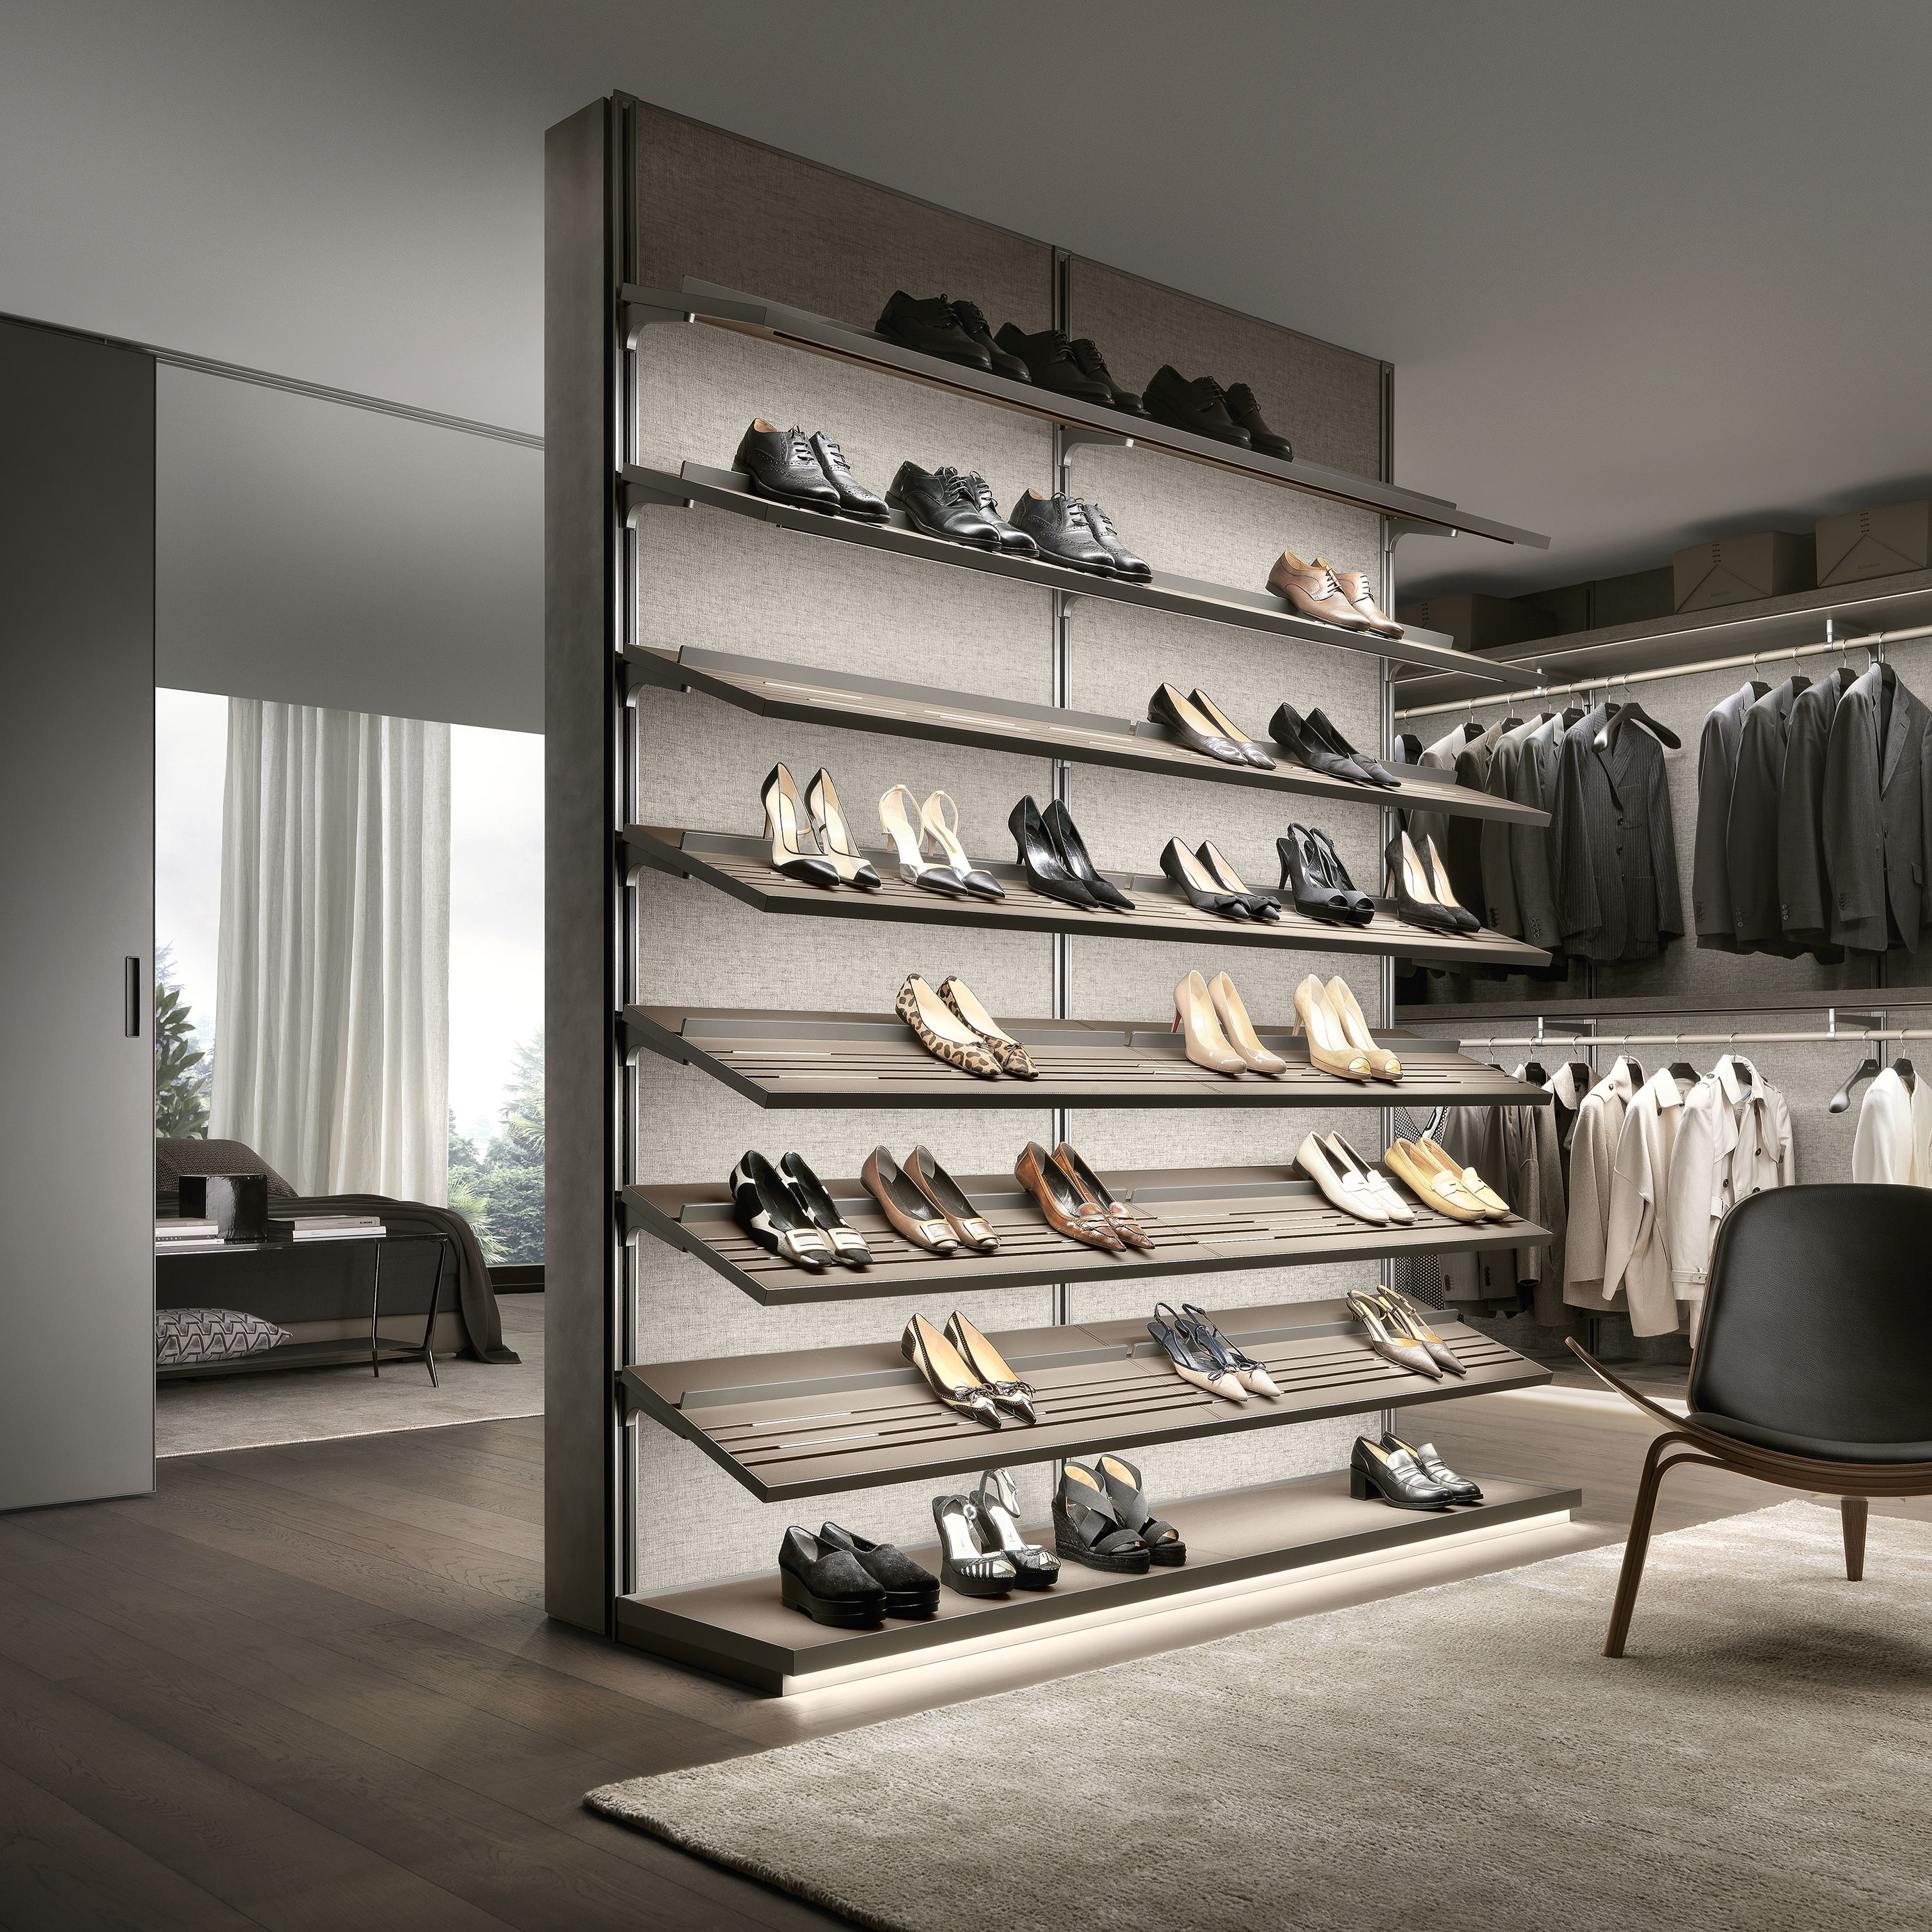 Composition With Shoe Rack Shelves Provided With Lower Led Lighting,